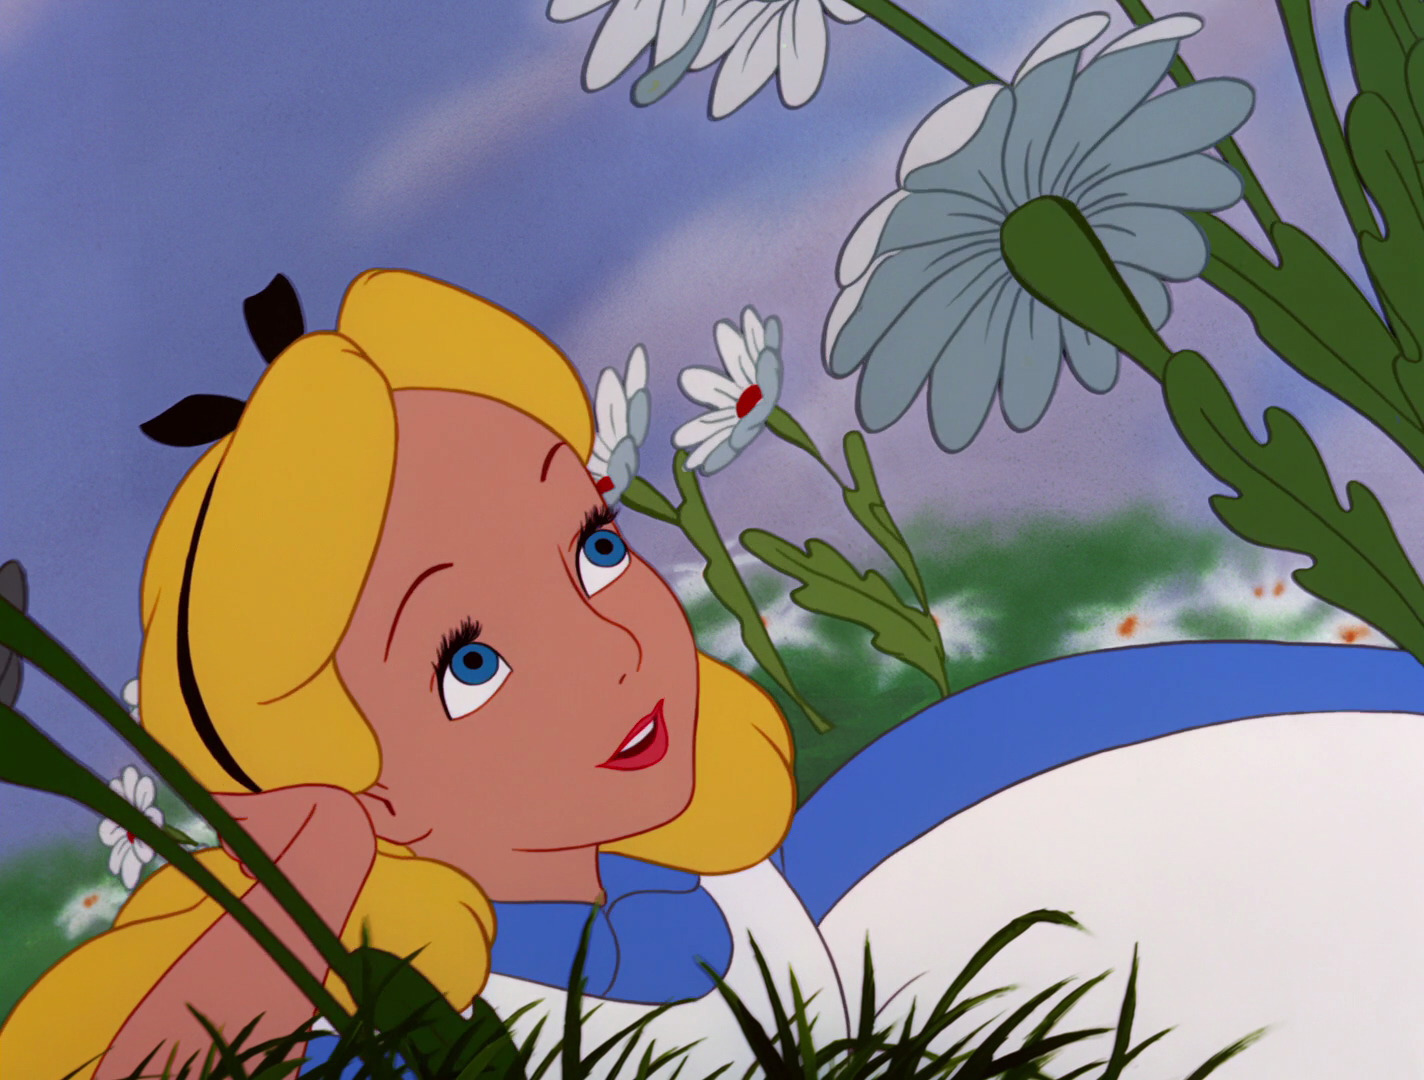 Alice's Adventures in Wonderland - Literature Wiki